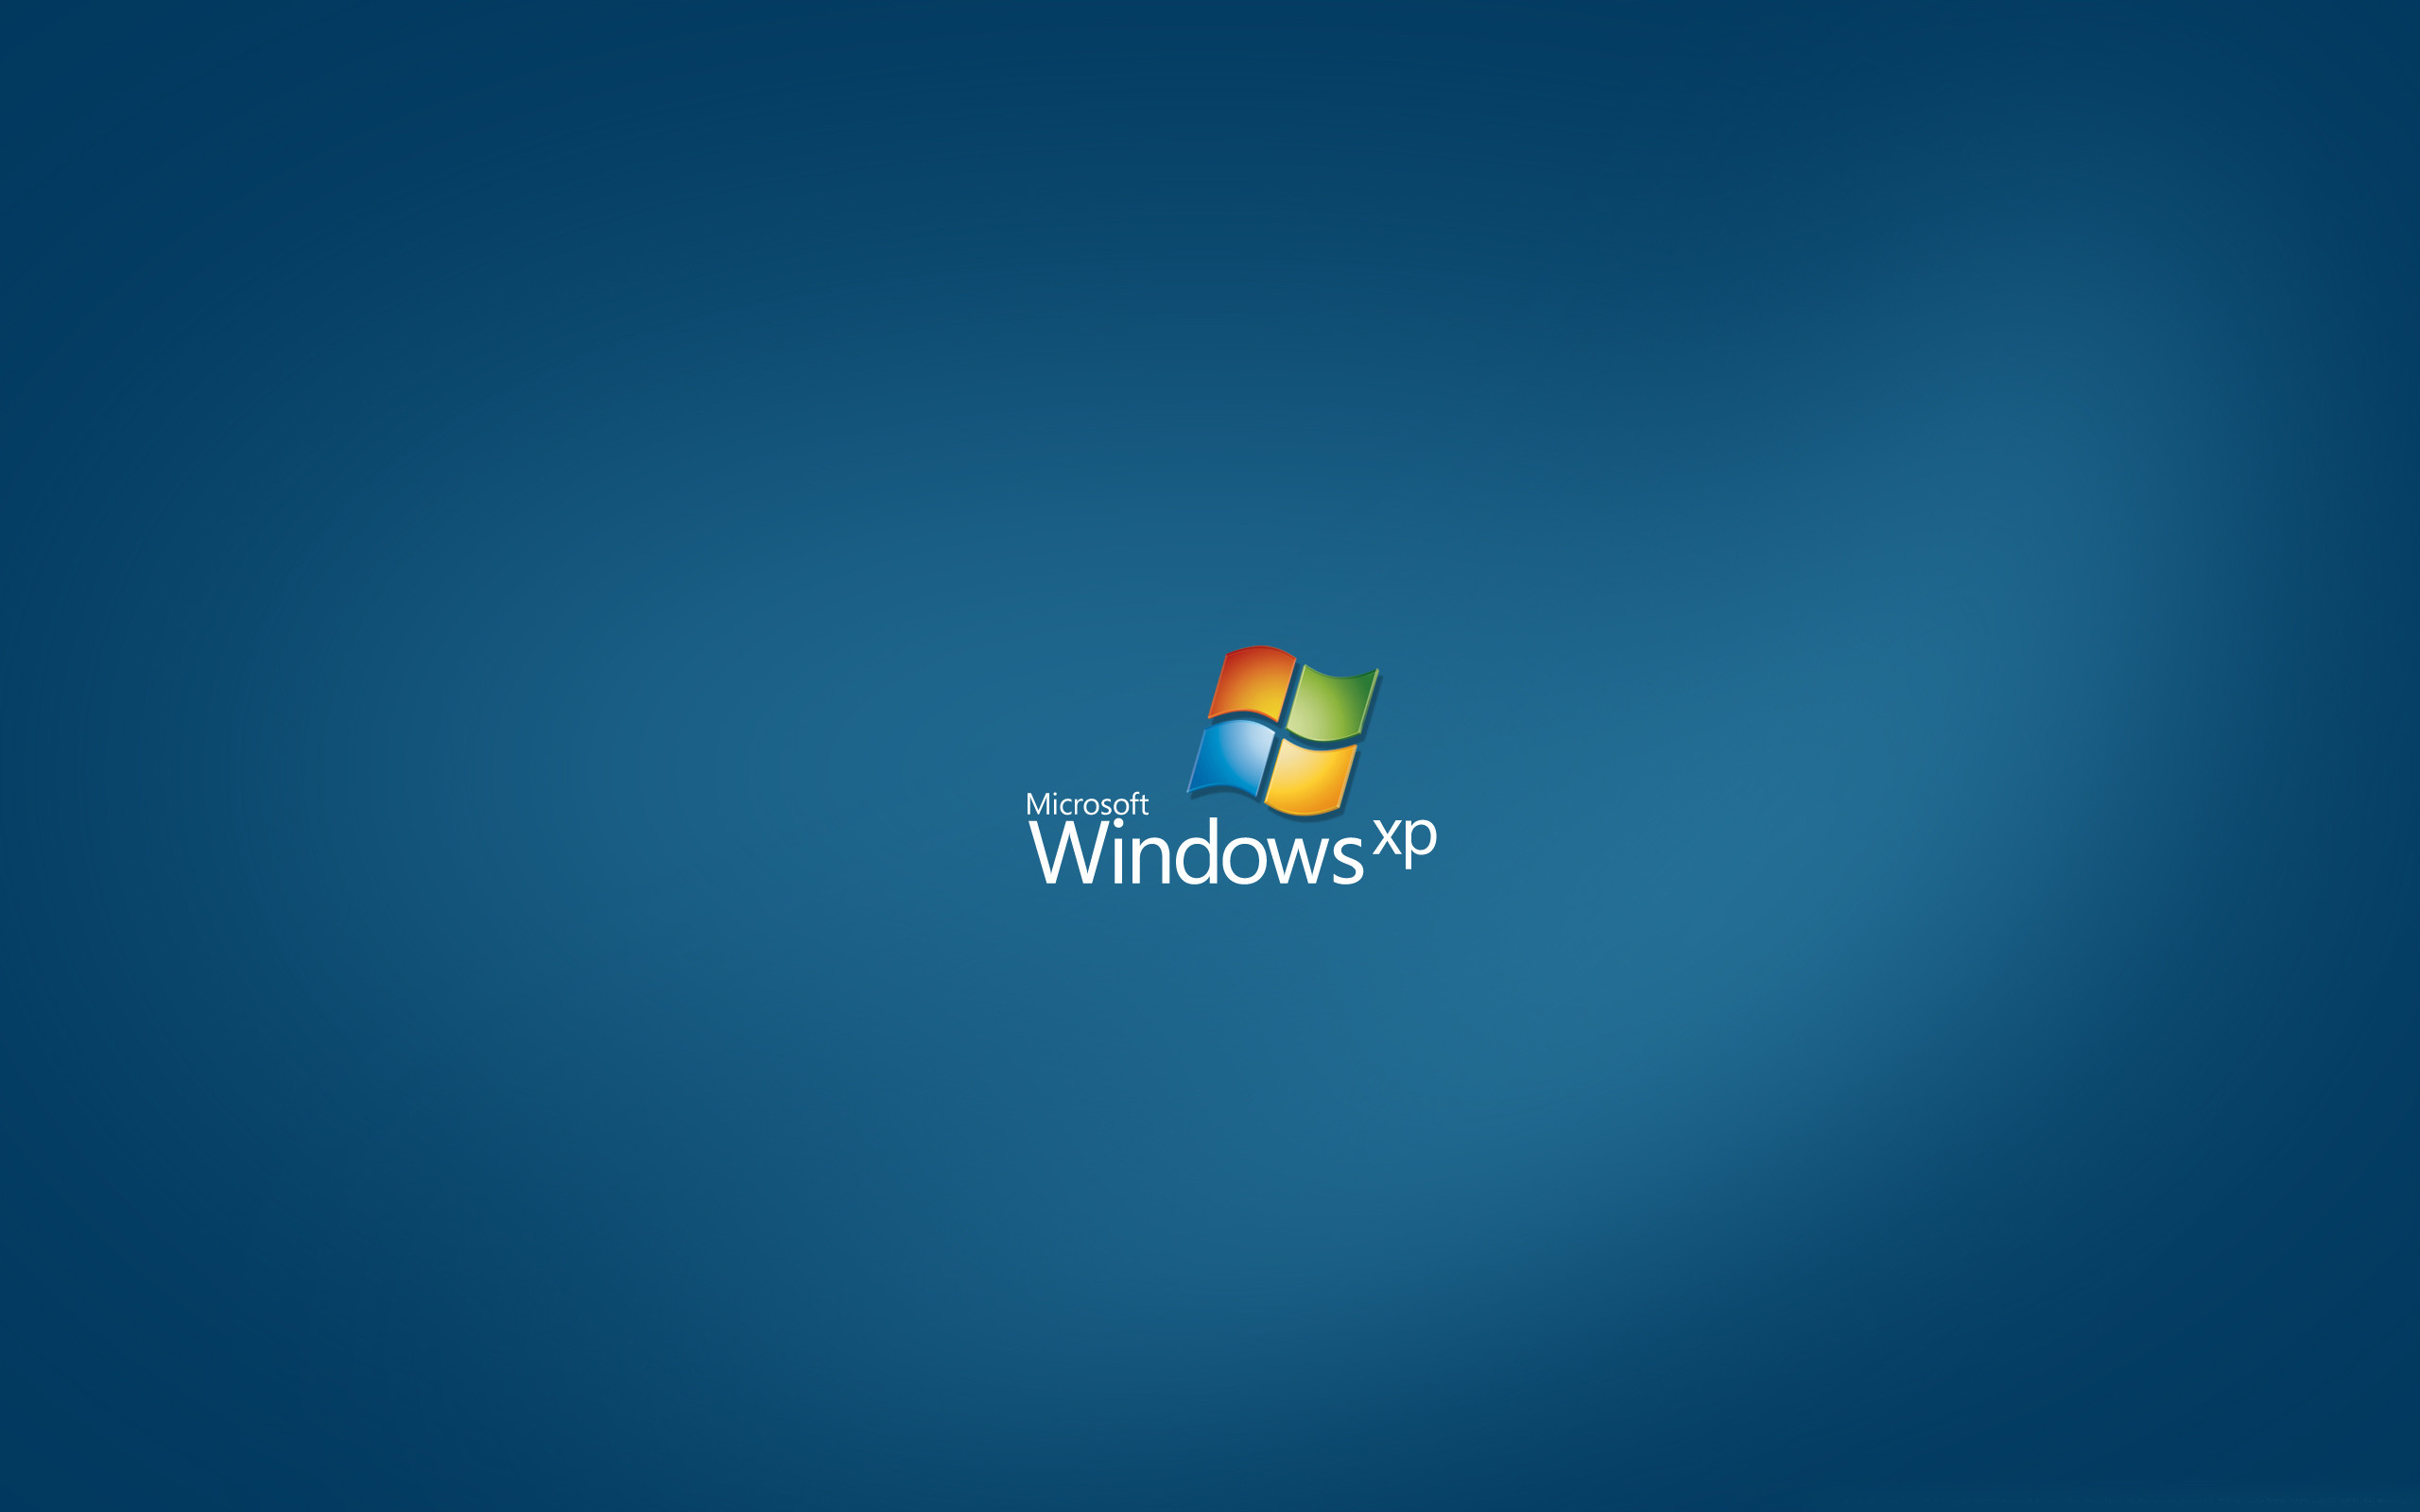 windows xp wallpaper hd ·①